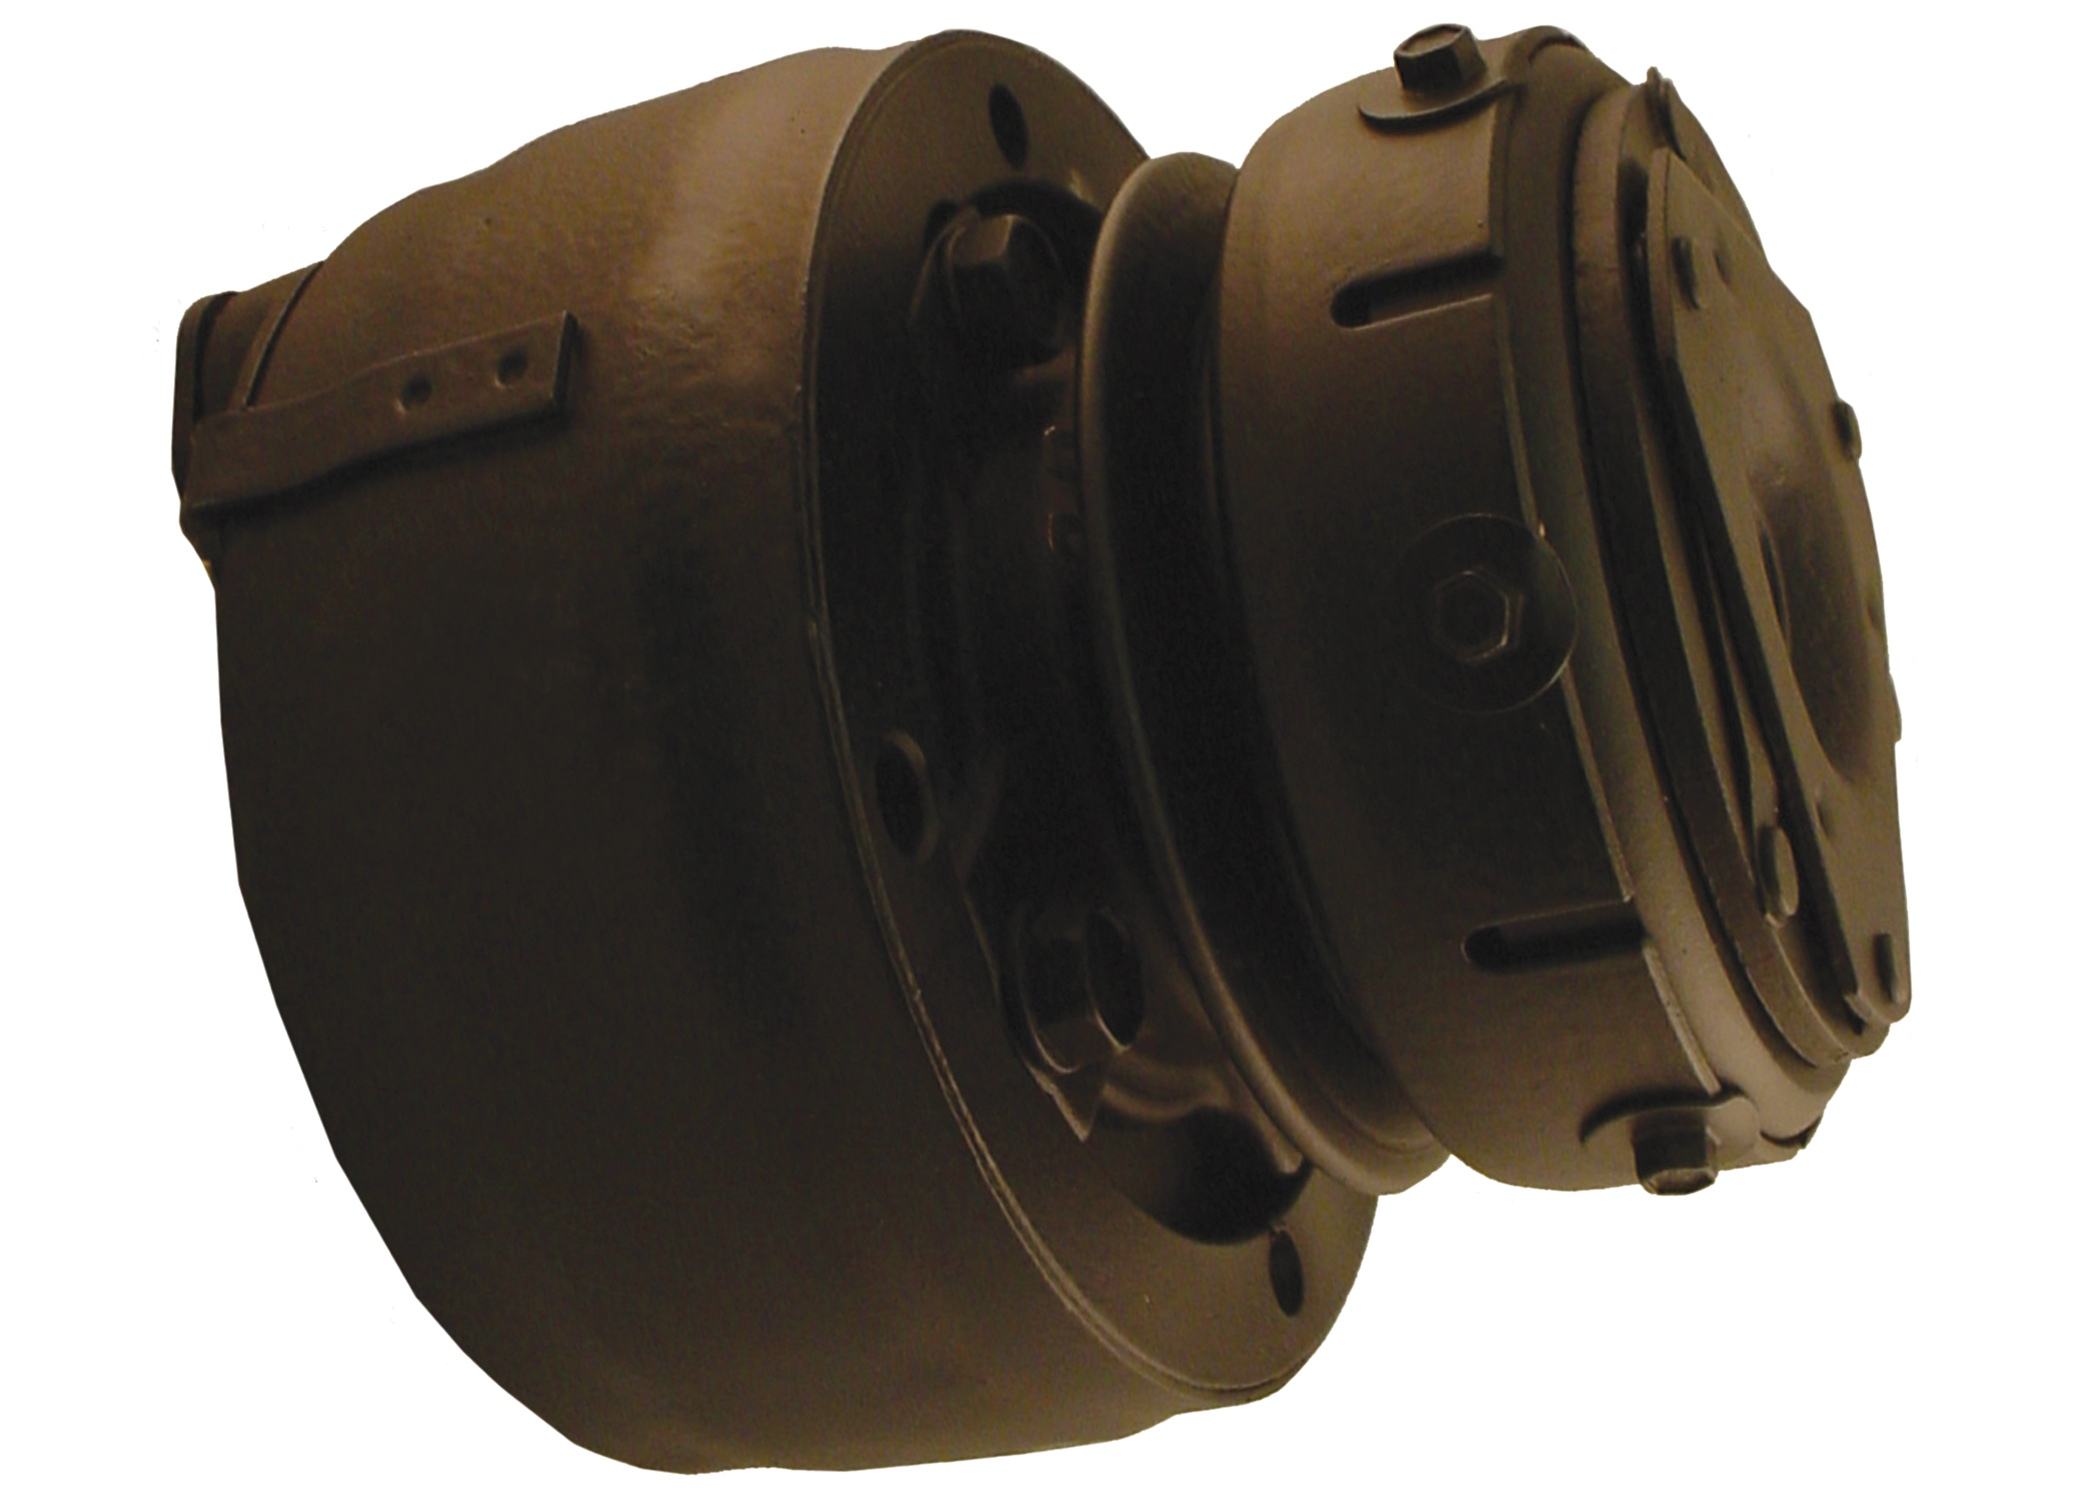 ACDELCO PROFESSIONAL - Remanufactured A/C Compressor - DCC 15-20290